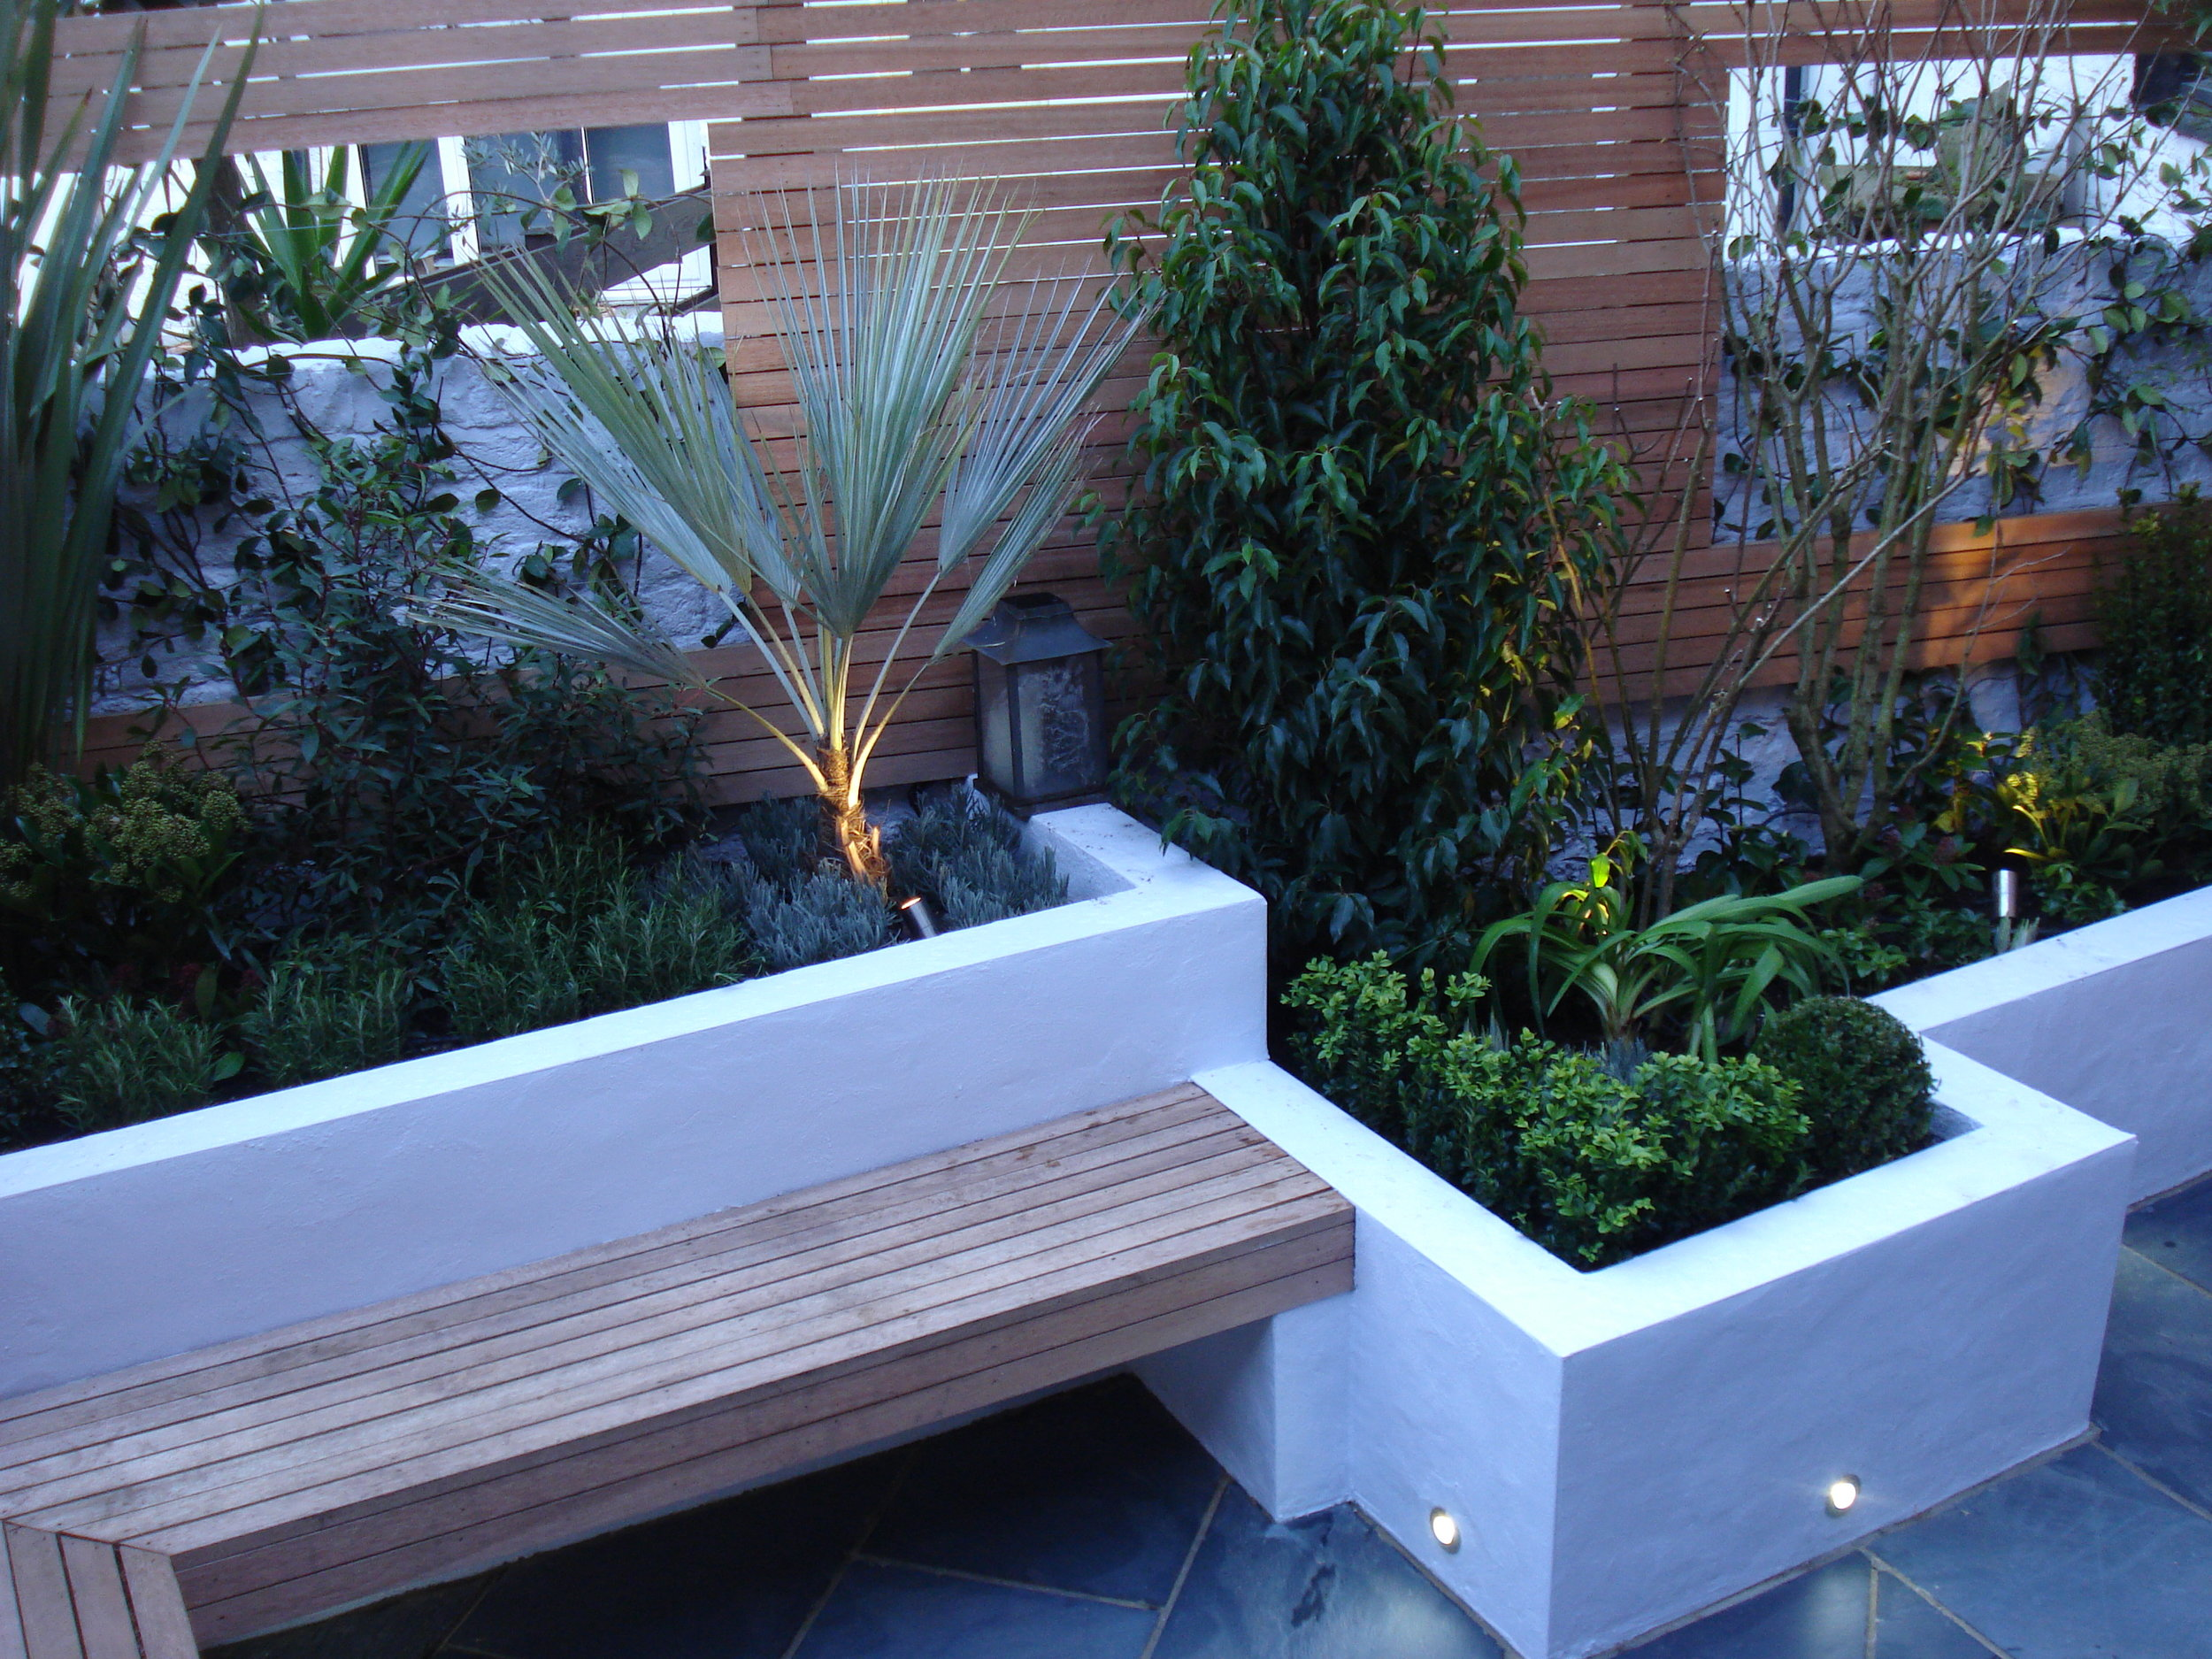 Hardwood bench seating